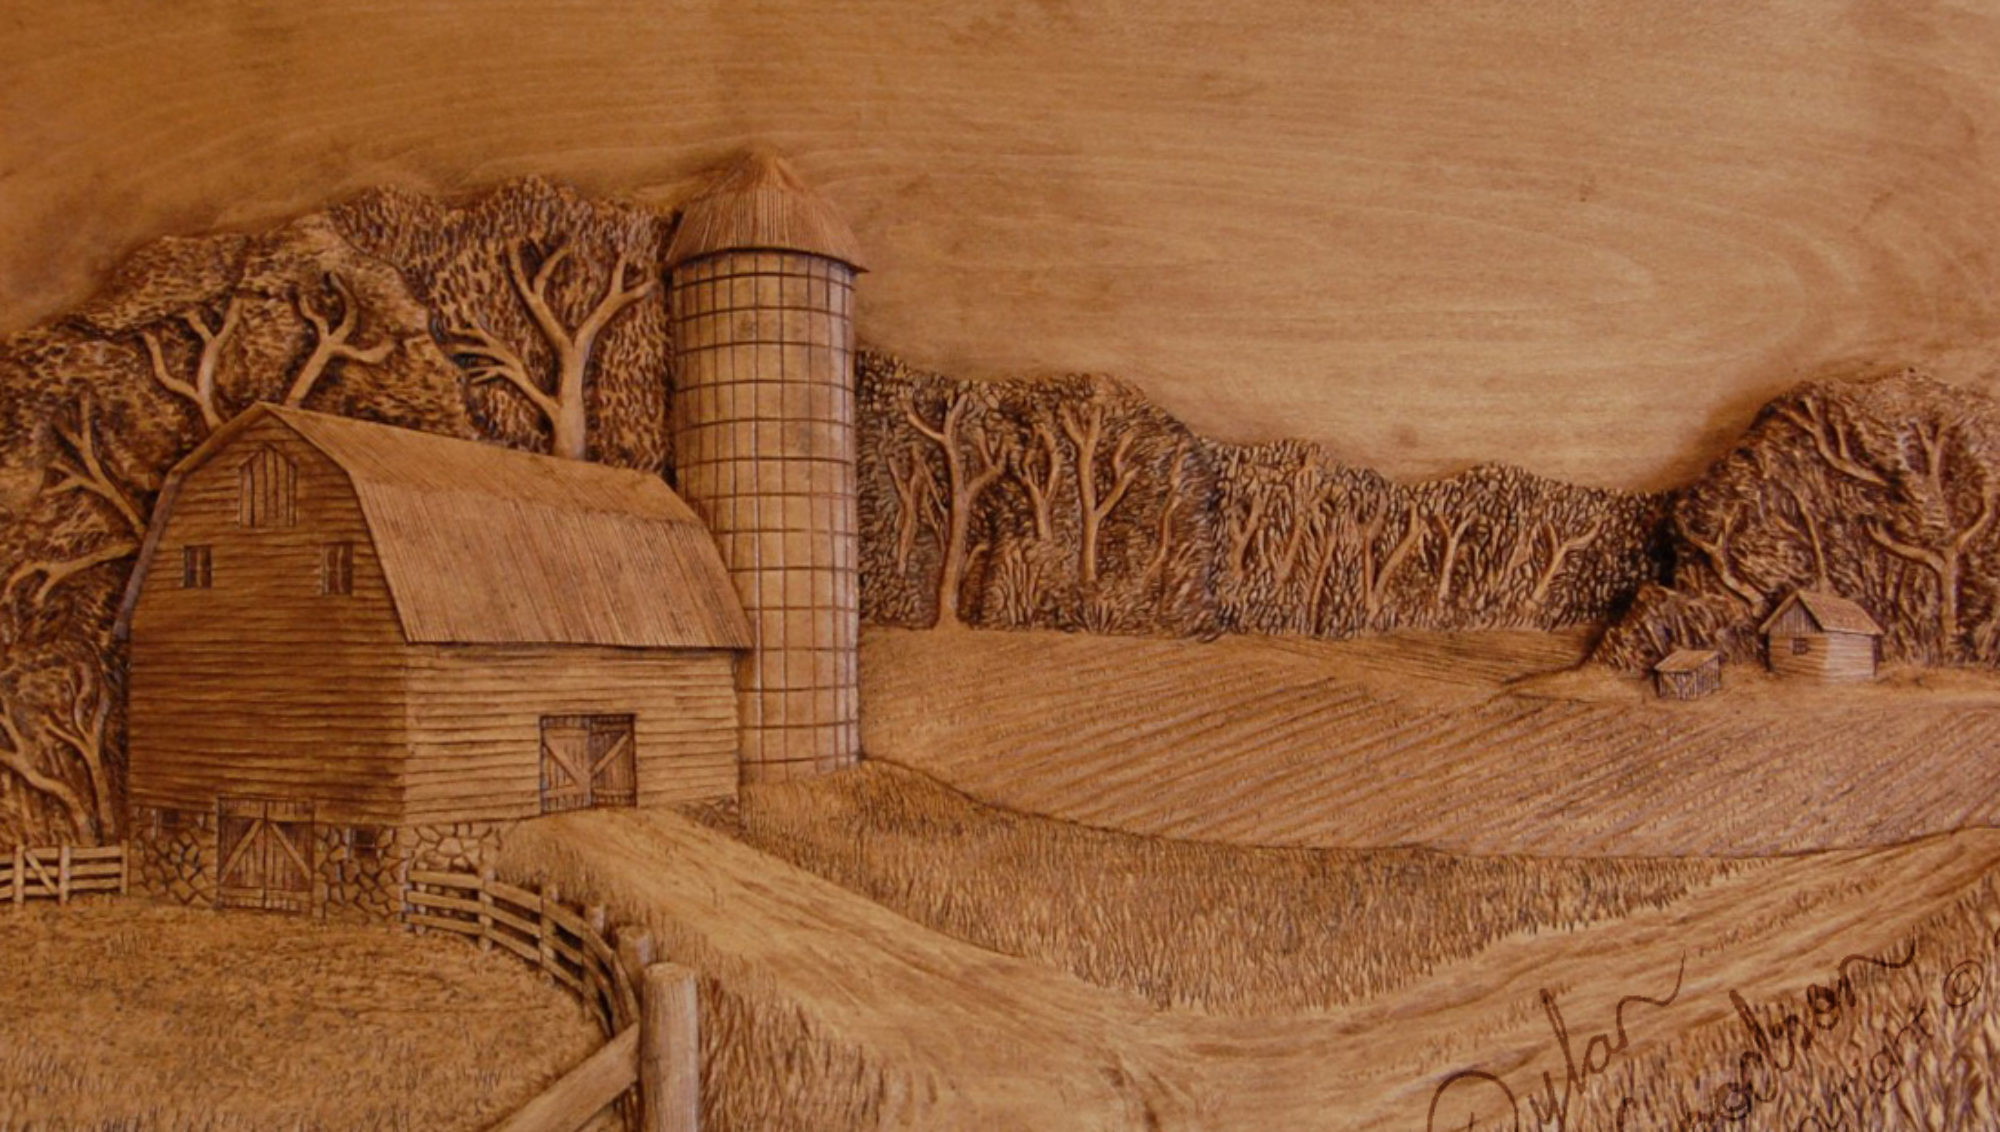 Wood Carvings by Dylan Goodson